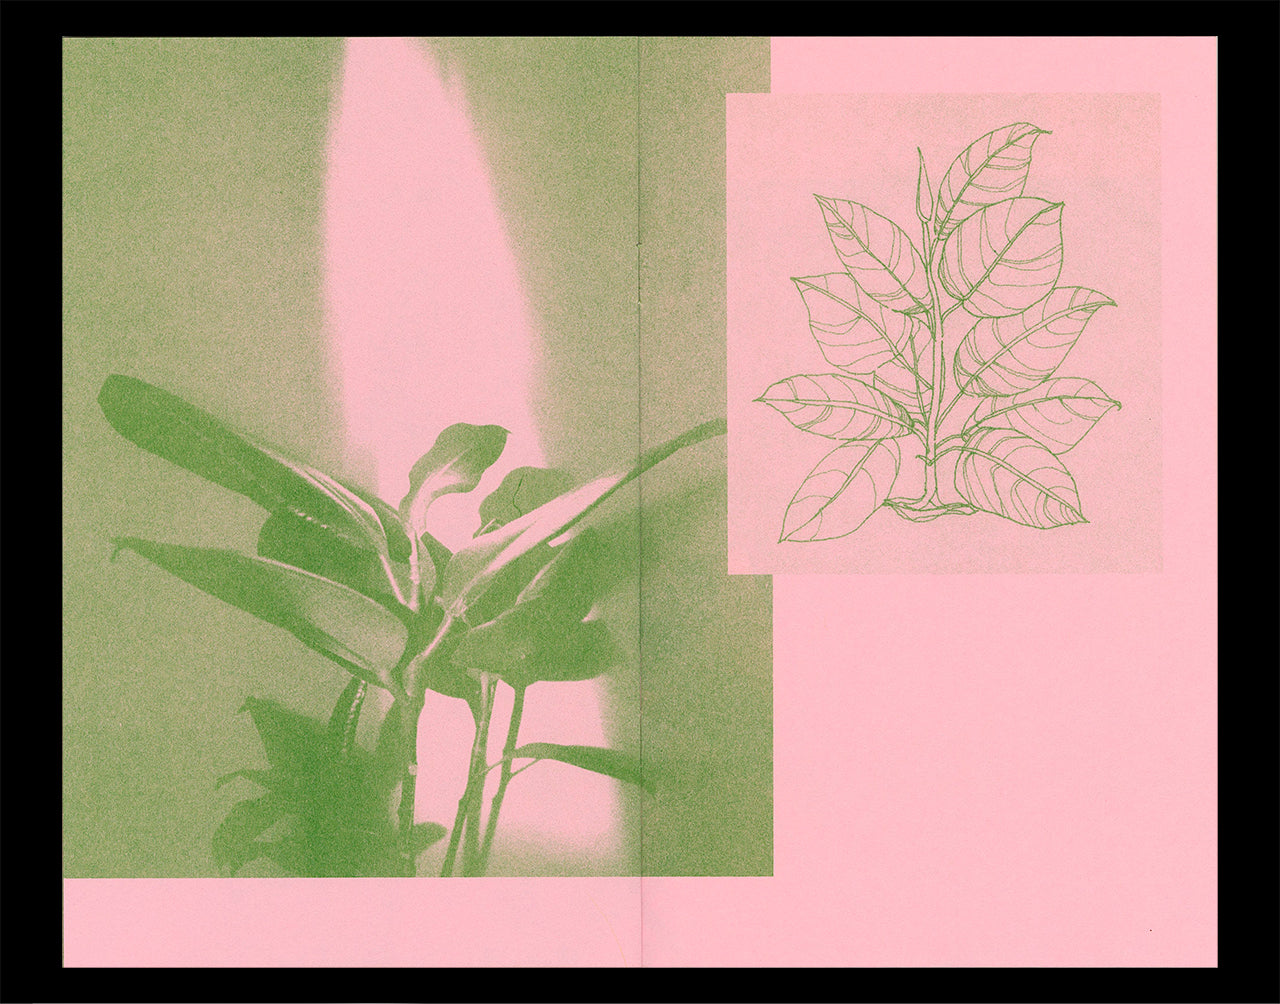 Interior spread of Nicole M. Doan's Portraits of Home showing a photograph an an illustration of plants printed in kelly green Riso ink on a pink paper background.